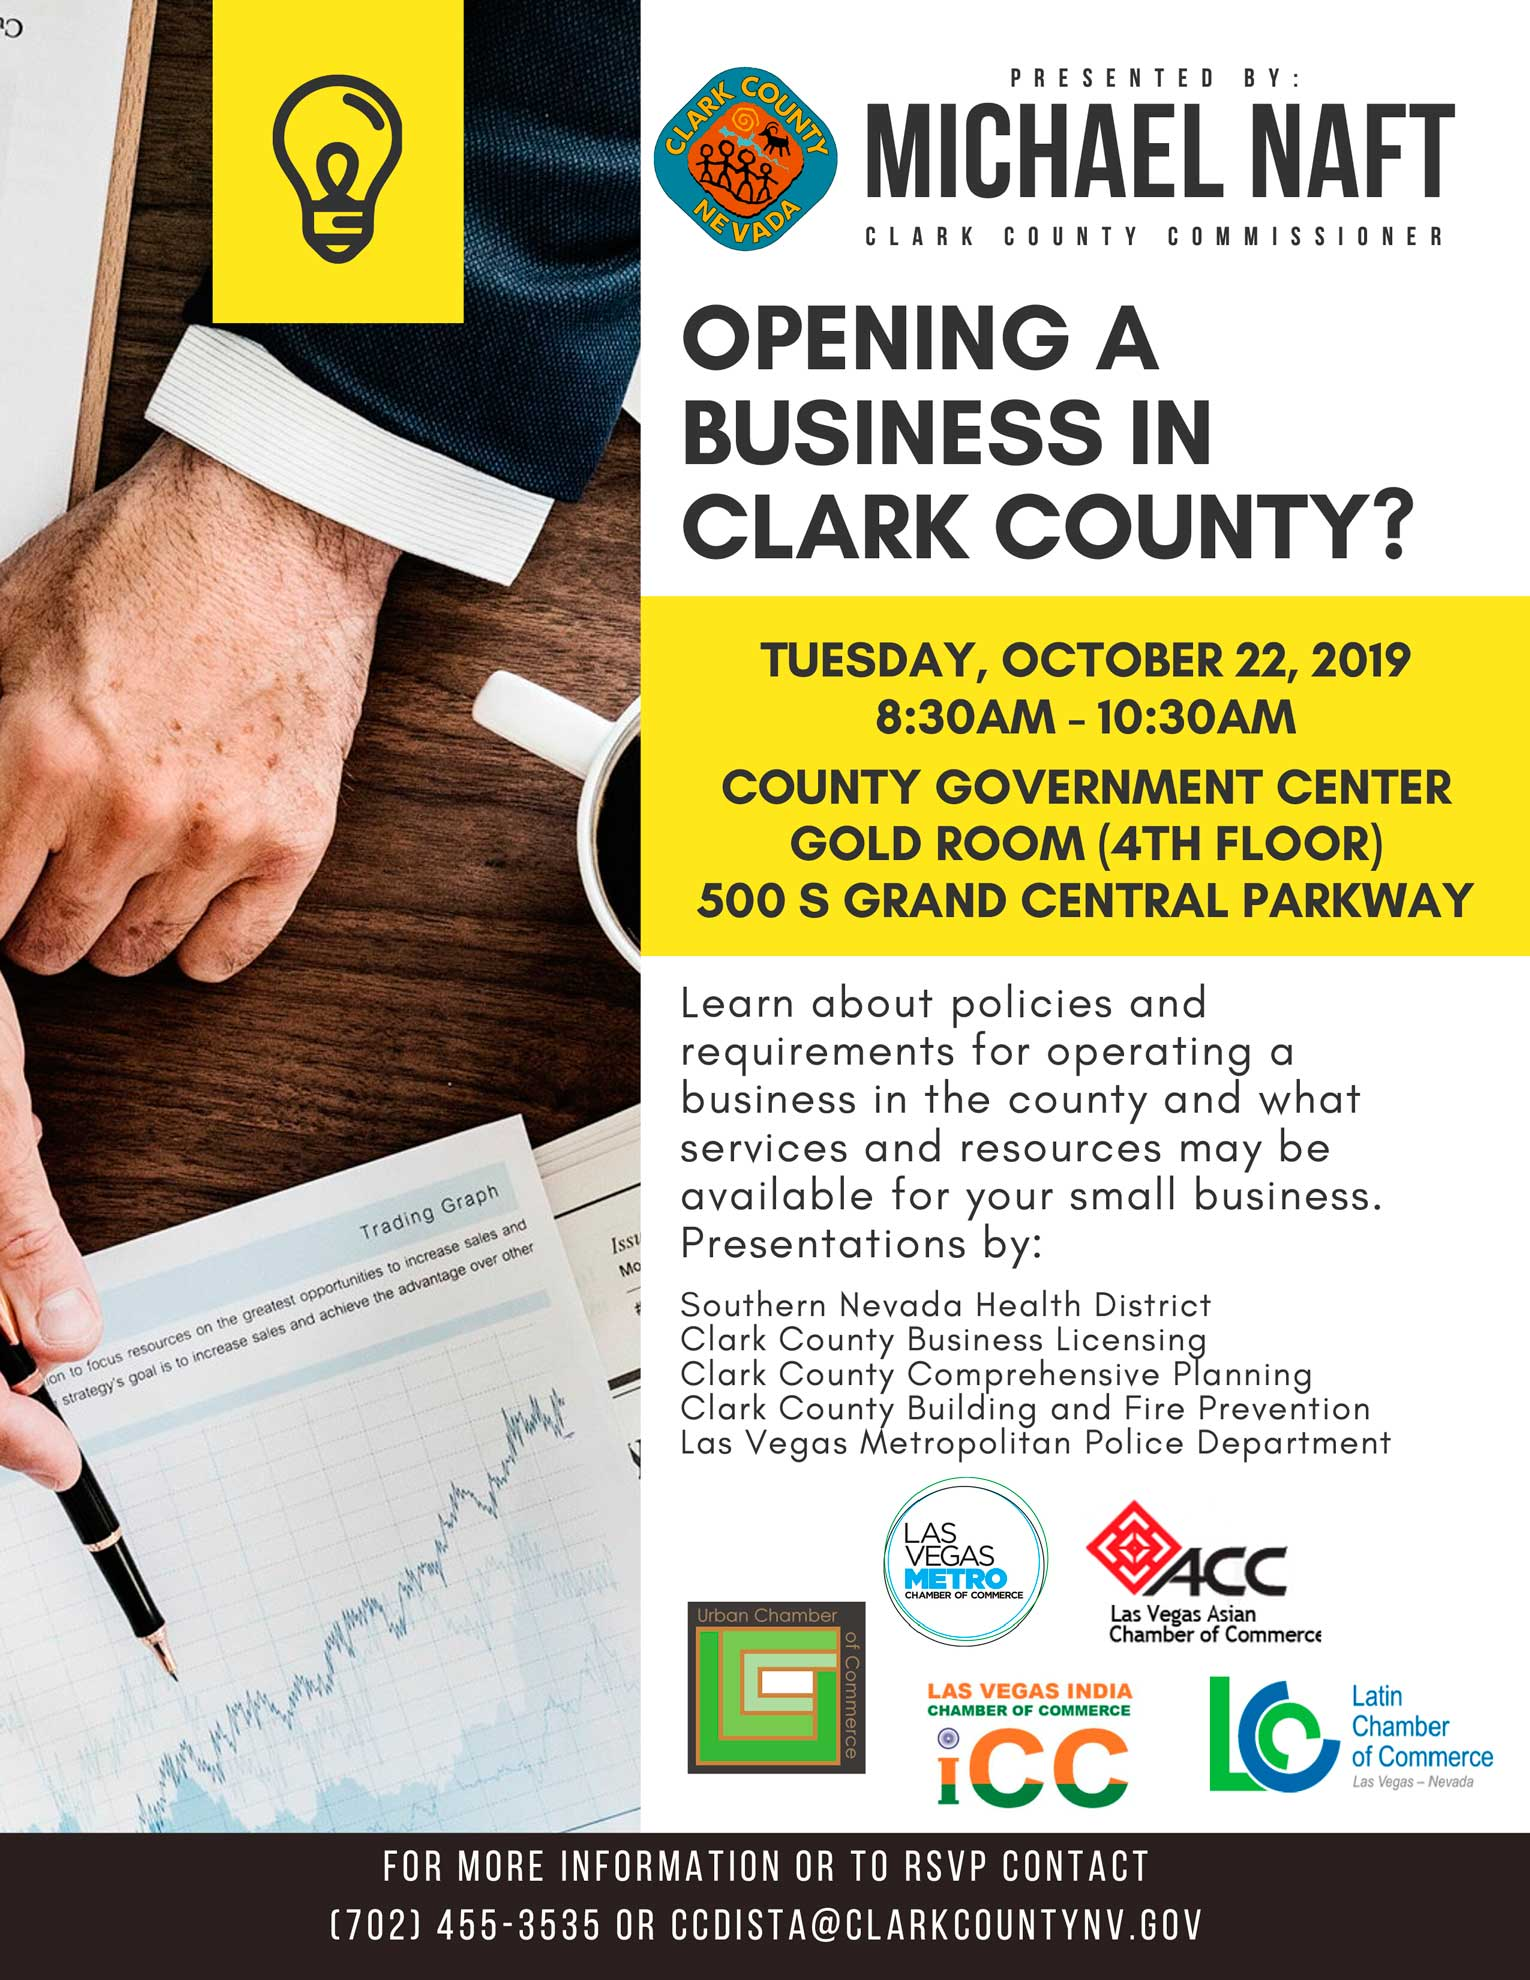 Opening A Business In Clark Country? @ County Government Center Gold Room(4th Floor)